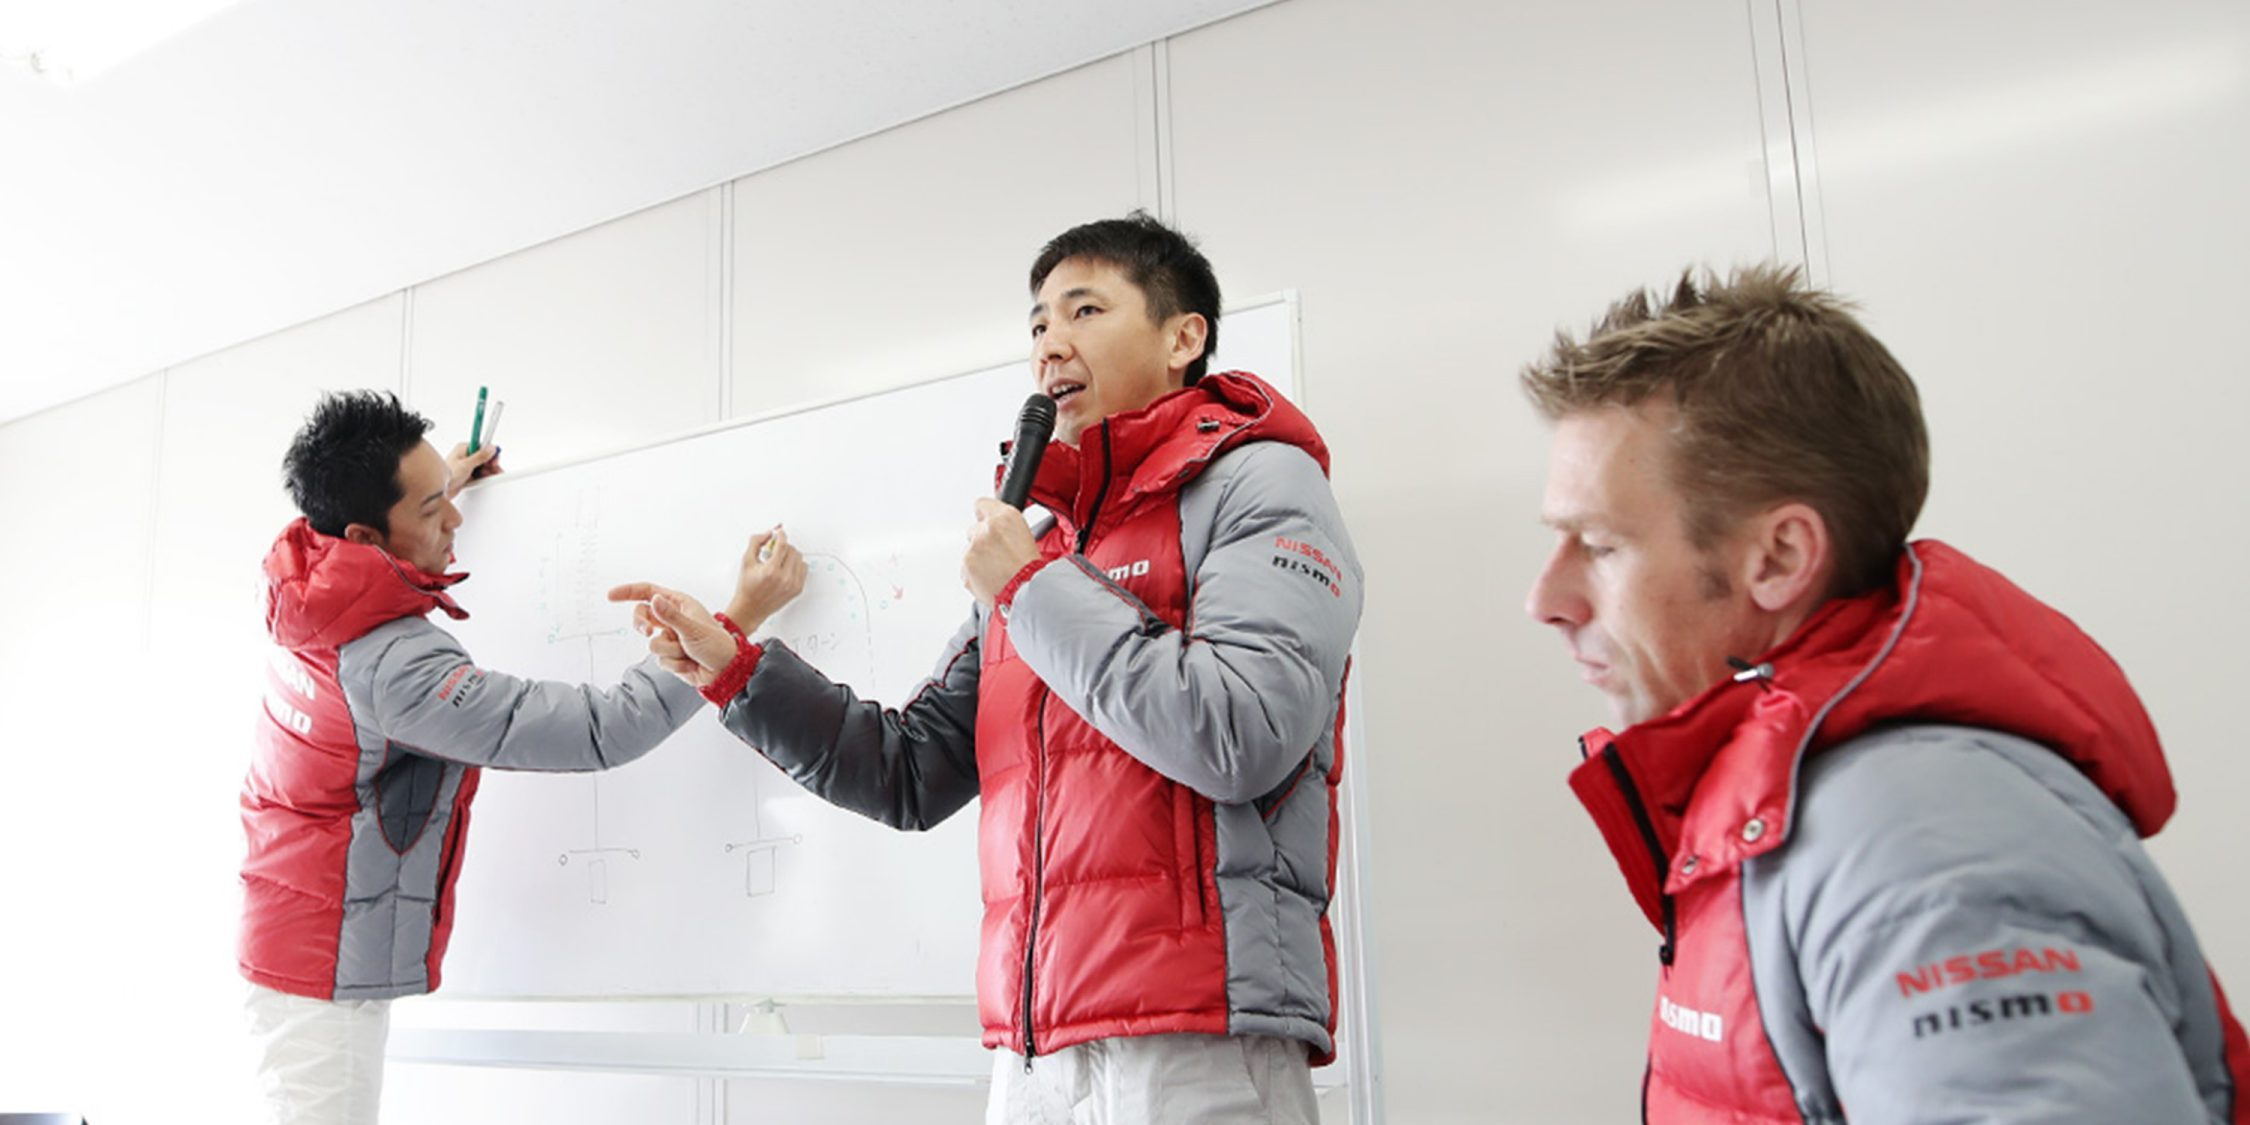 NISMO Driving Academy instructors